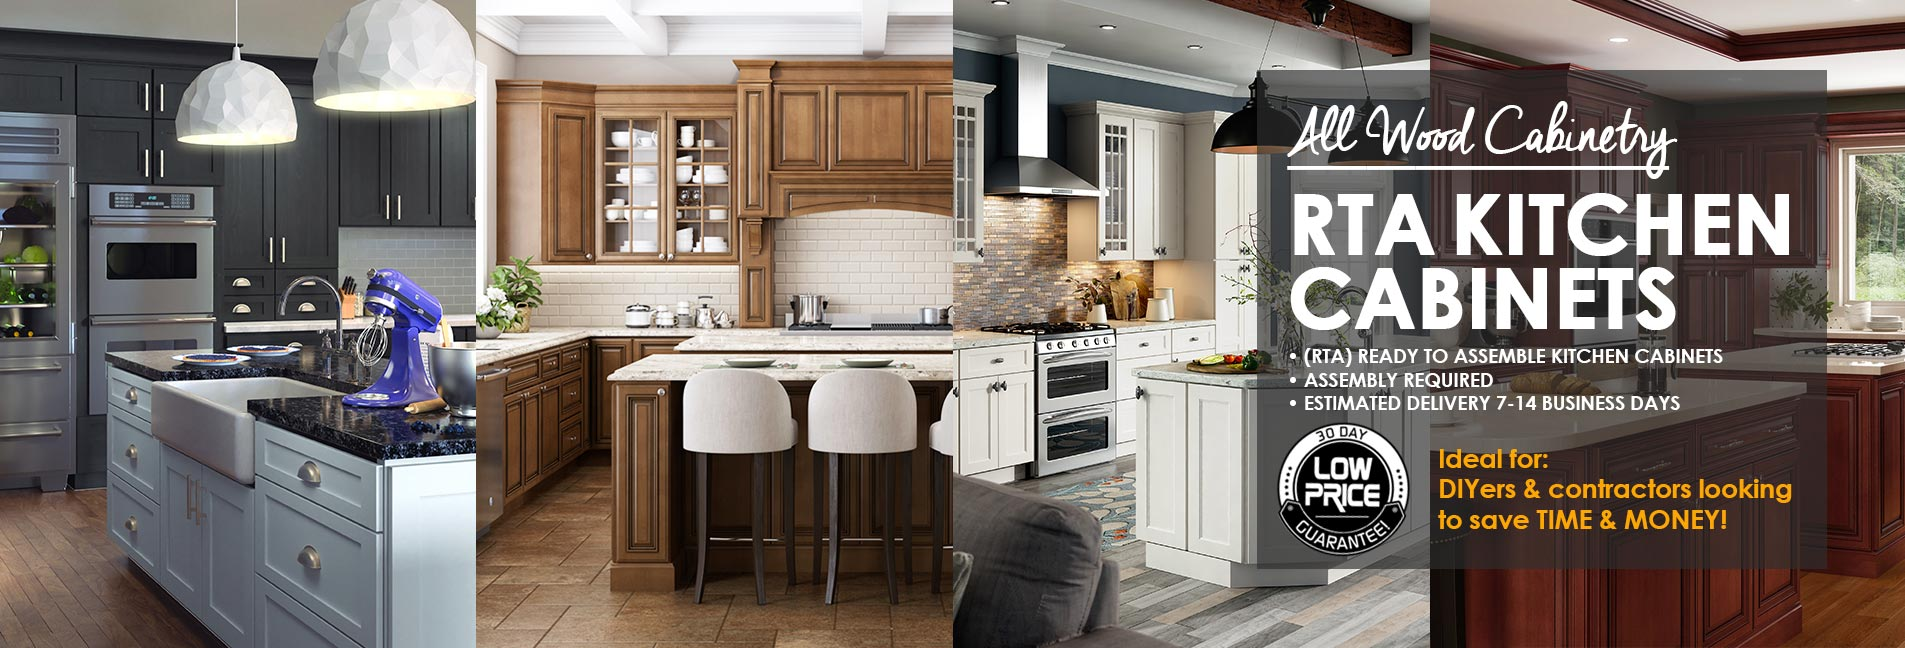 Kitchen Cabinets Jamaica kitchen cabinets all-wood affordable kitchen cabinets wood kitchen